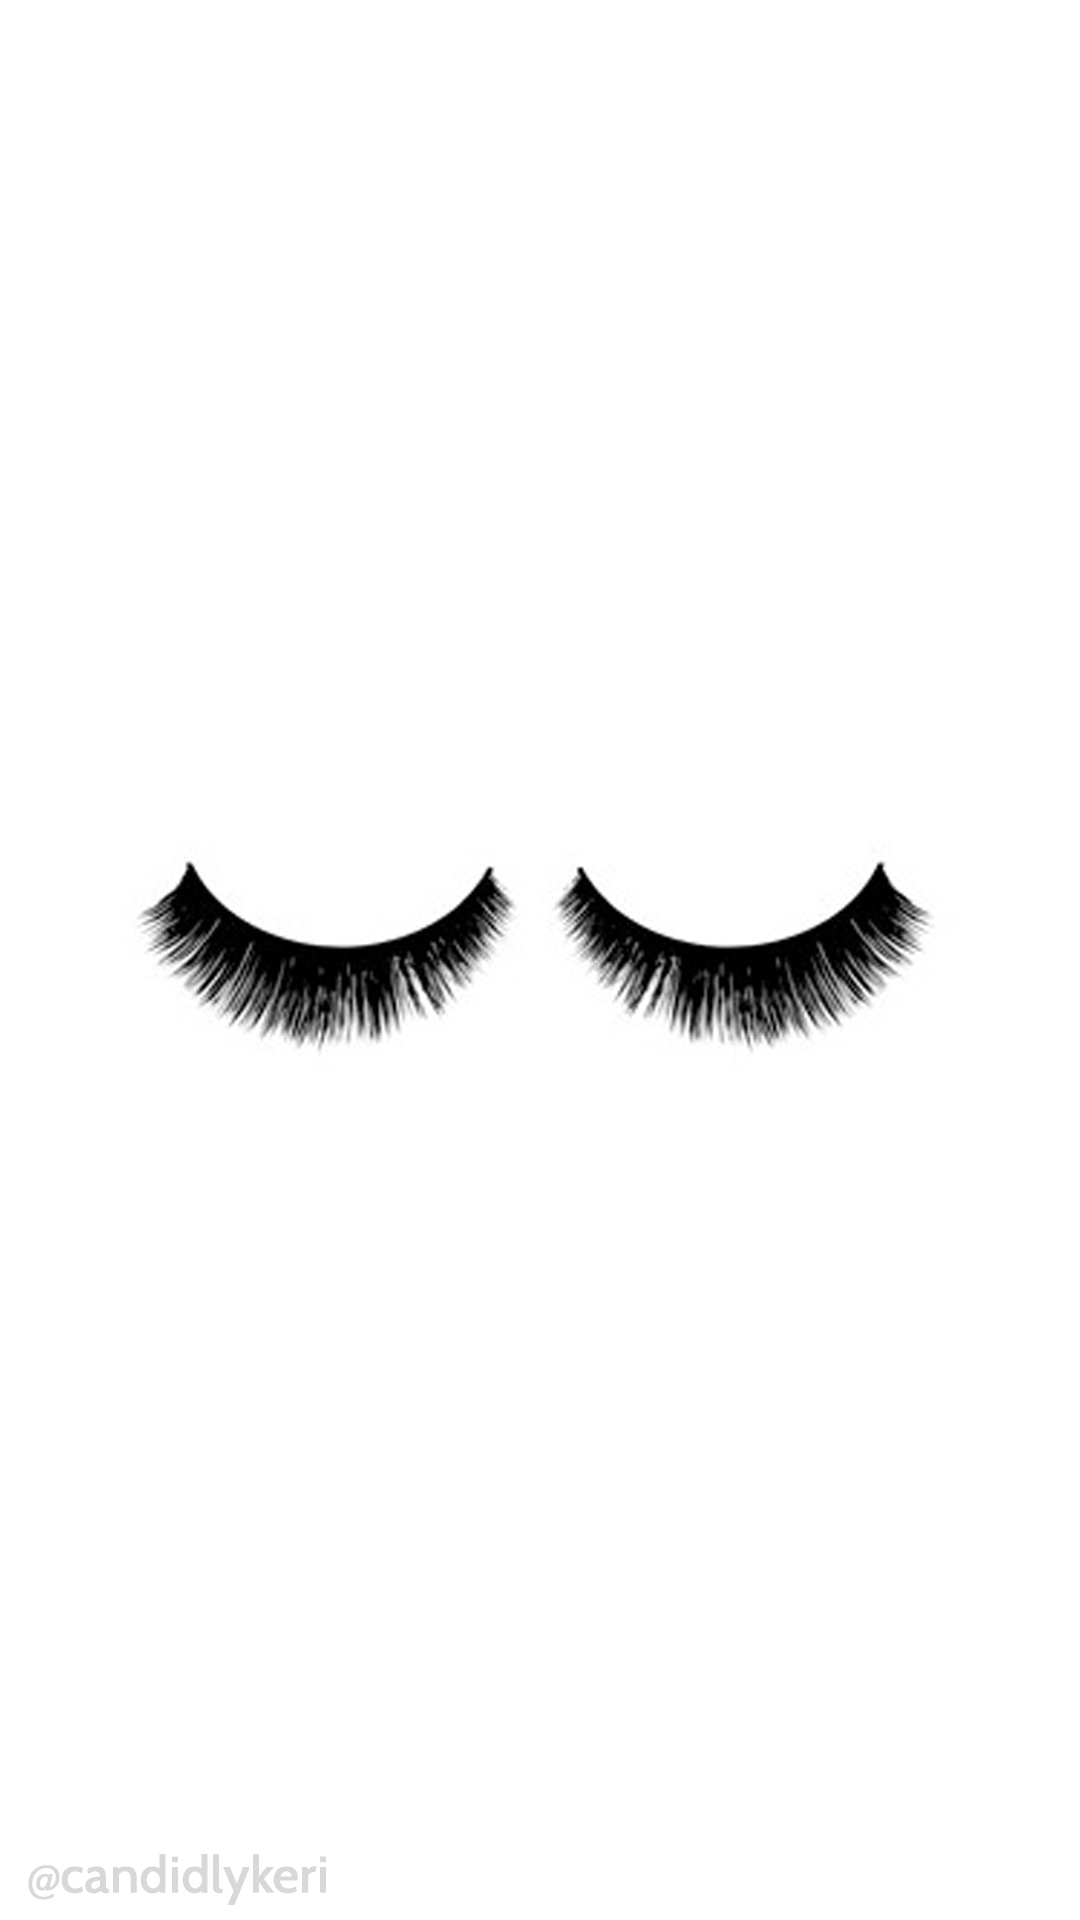 Eyelashes-Fake-lashes-sleepy-background-you-can-download-for-free-on-the-blog-For-any-dev-wallpaper-wp5206278